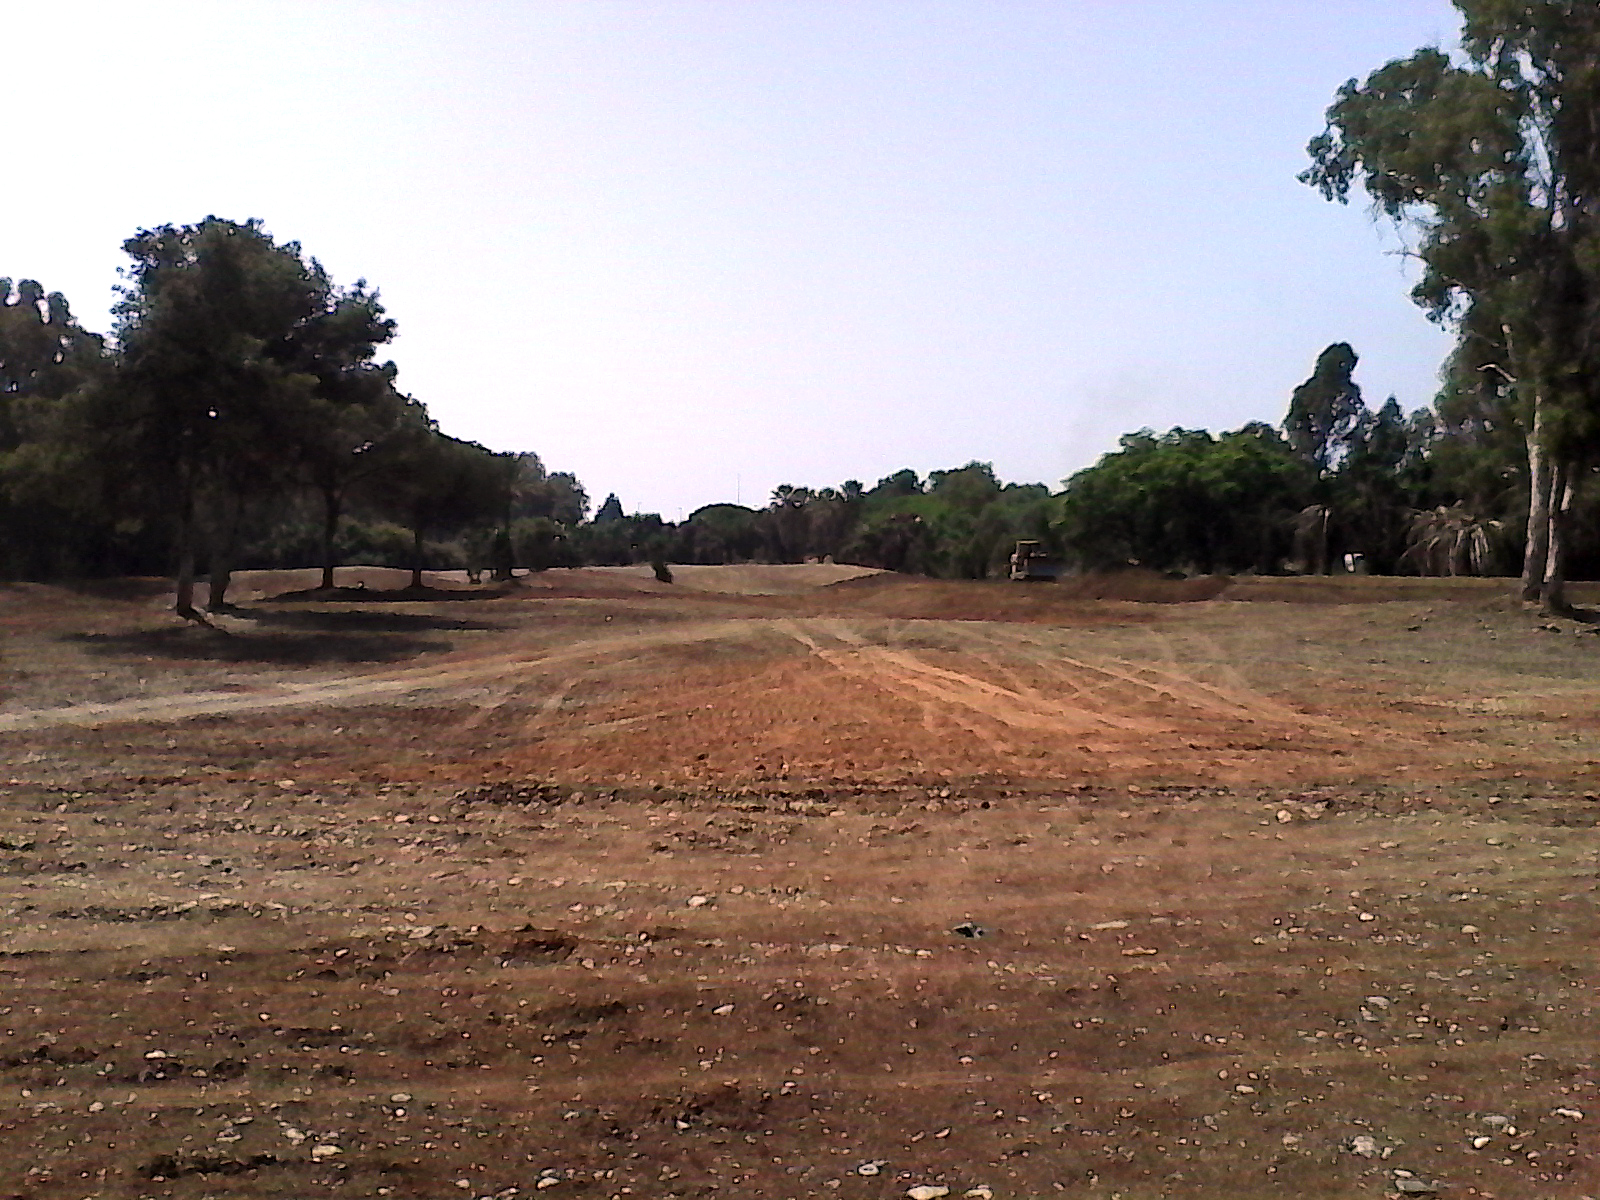 Marbella International Golf Center MIGC